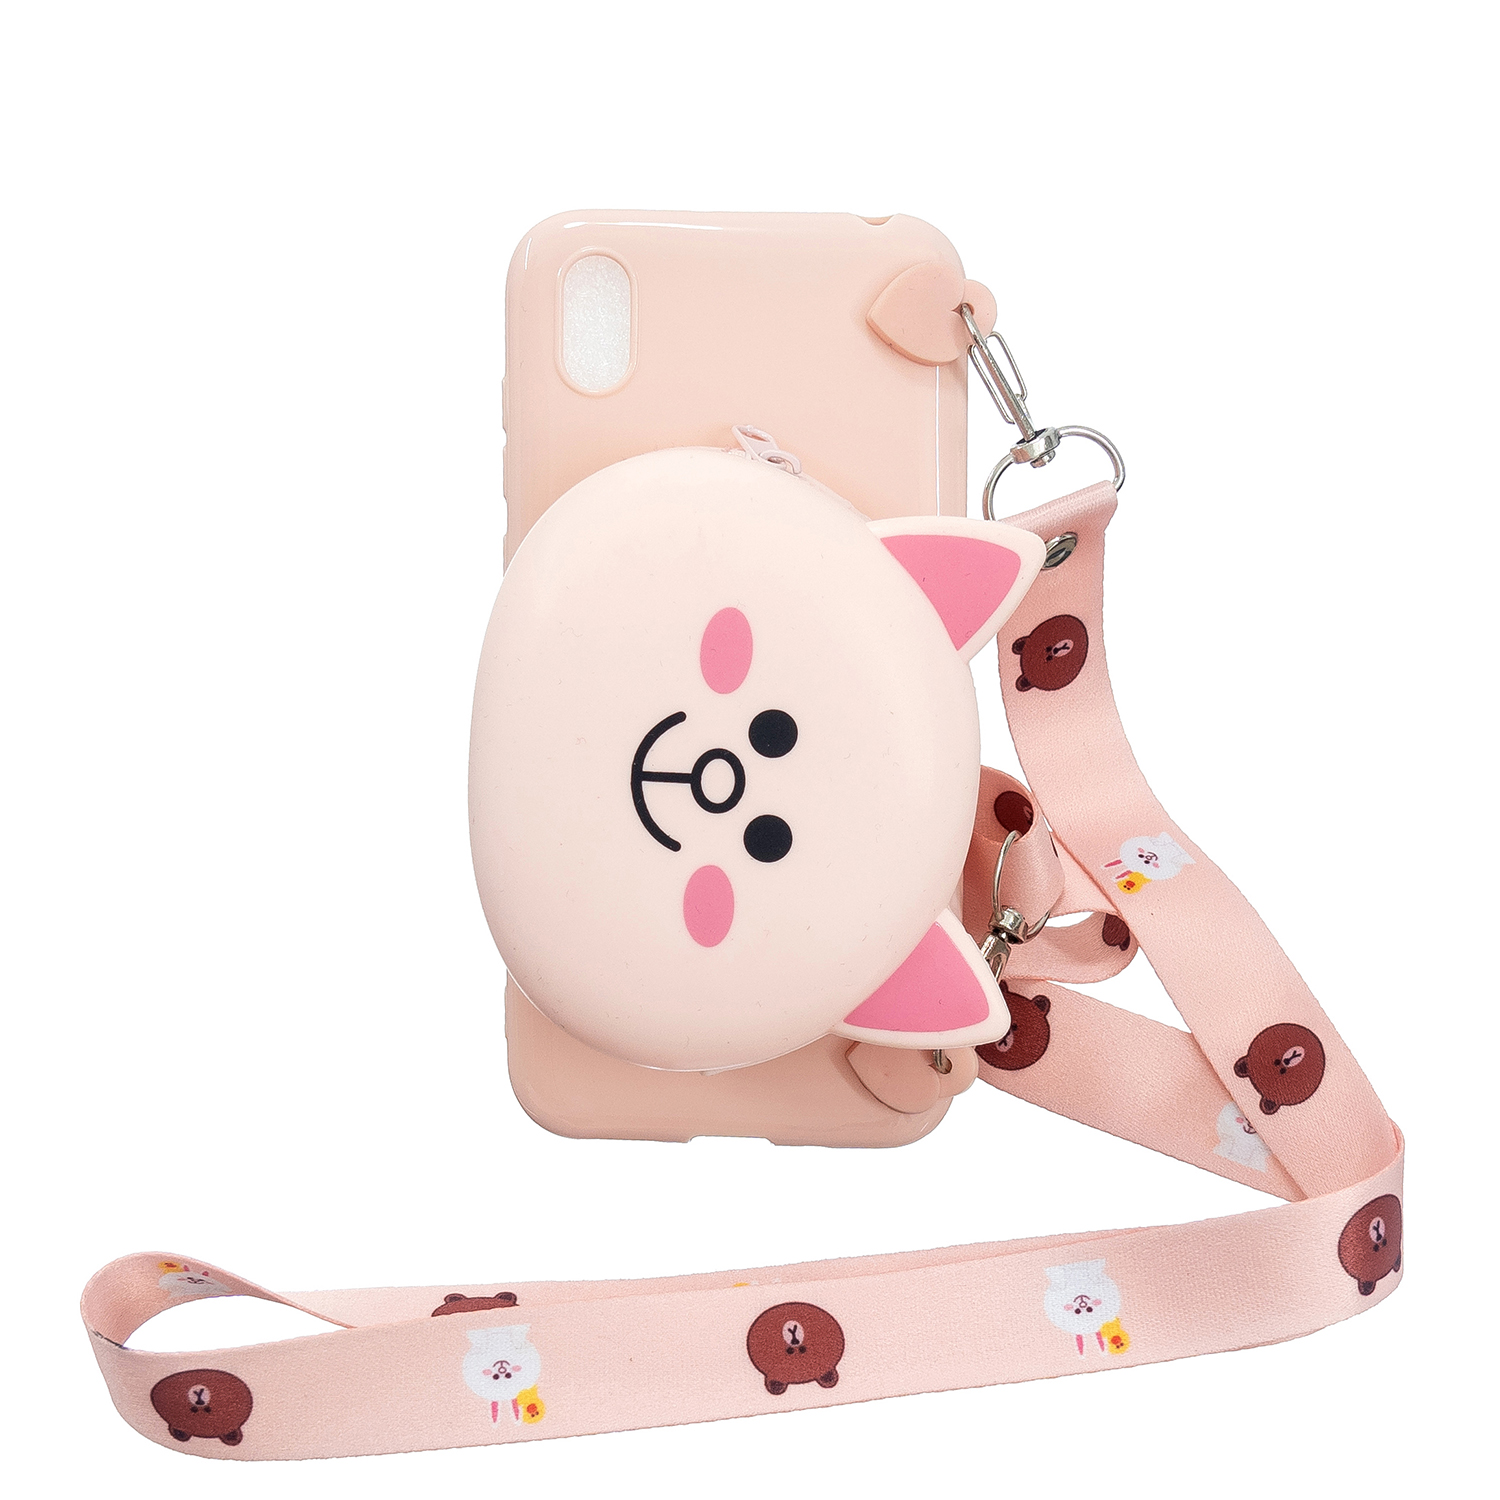 For HUAWEI Y5 2018/Y5 2019 Cellphone Case Mobile Phone Shell Shockproof TPU Cover with Cartoon Cat Pig Panda Coin Purse Lovely Shoulder Starp  Pink